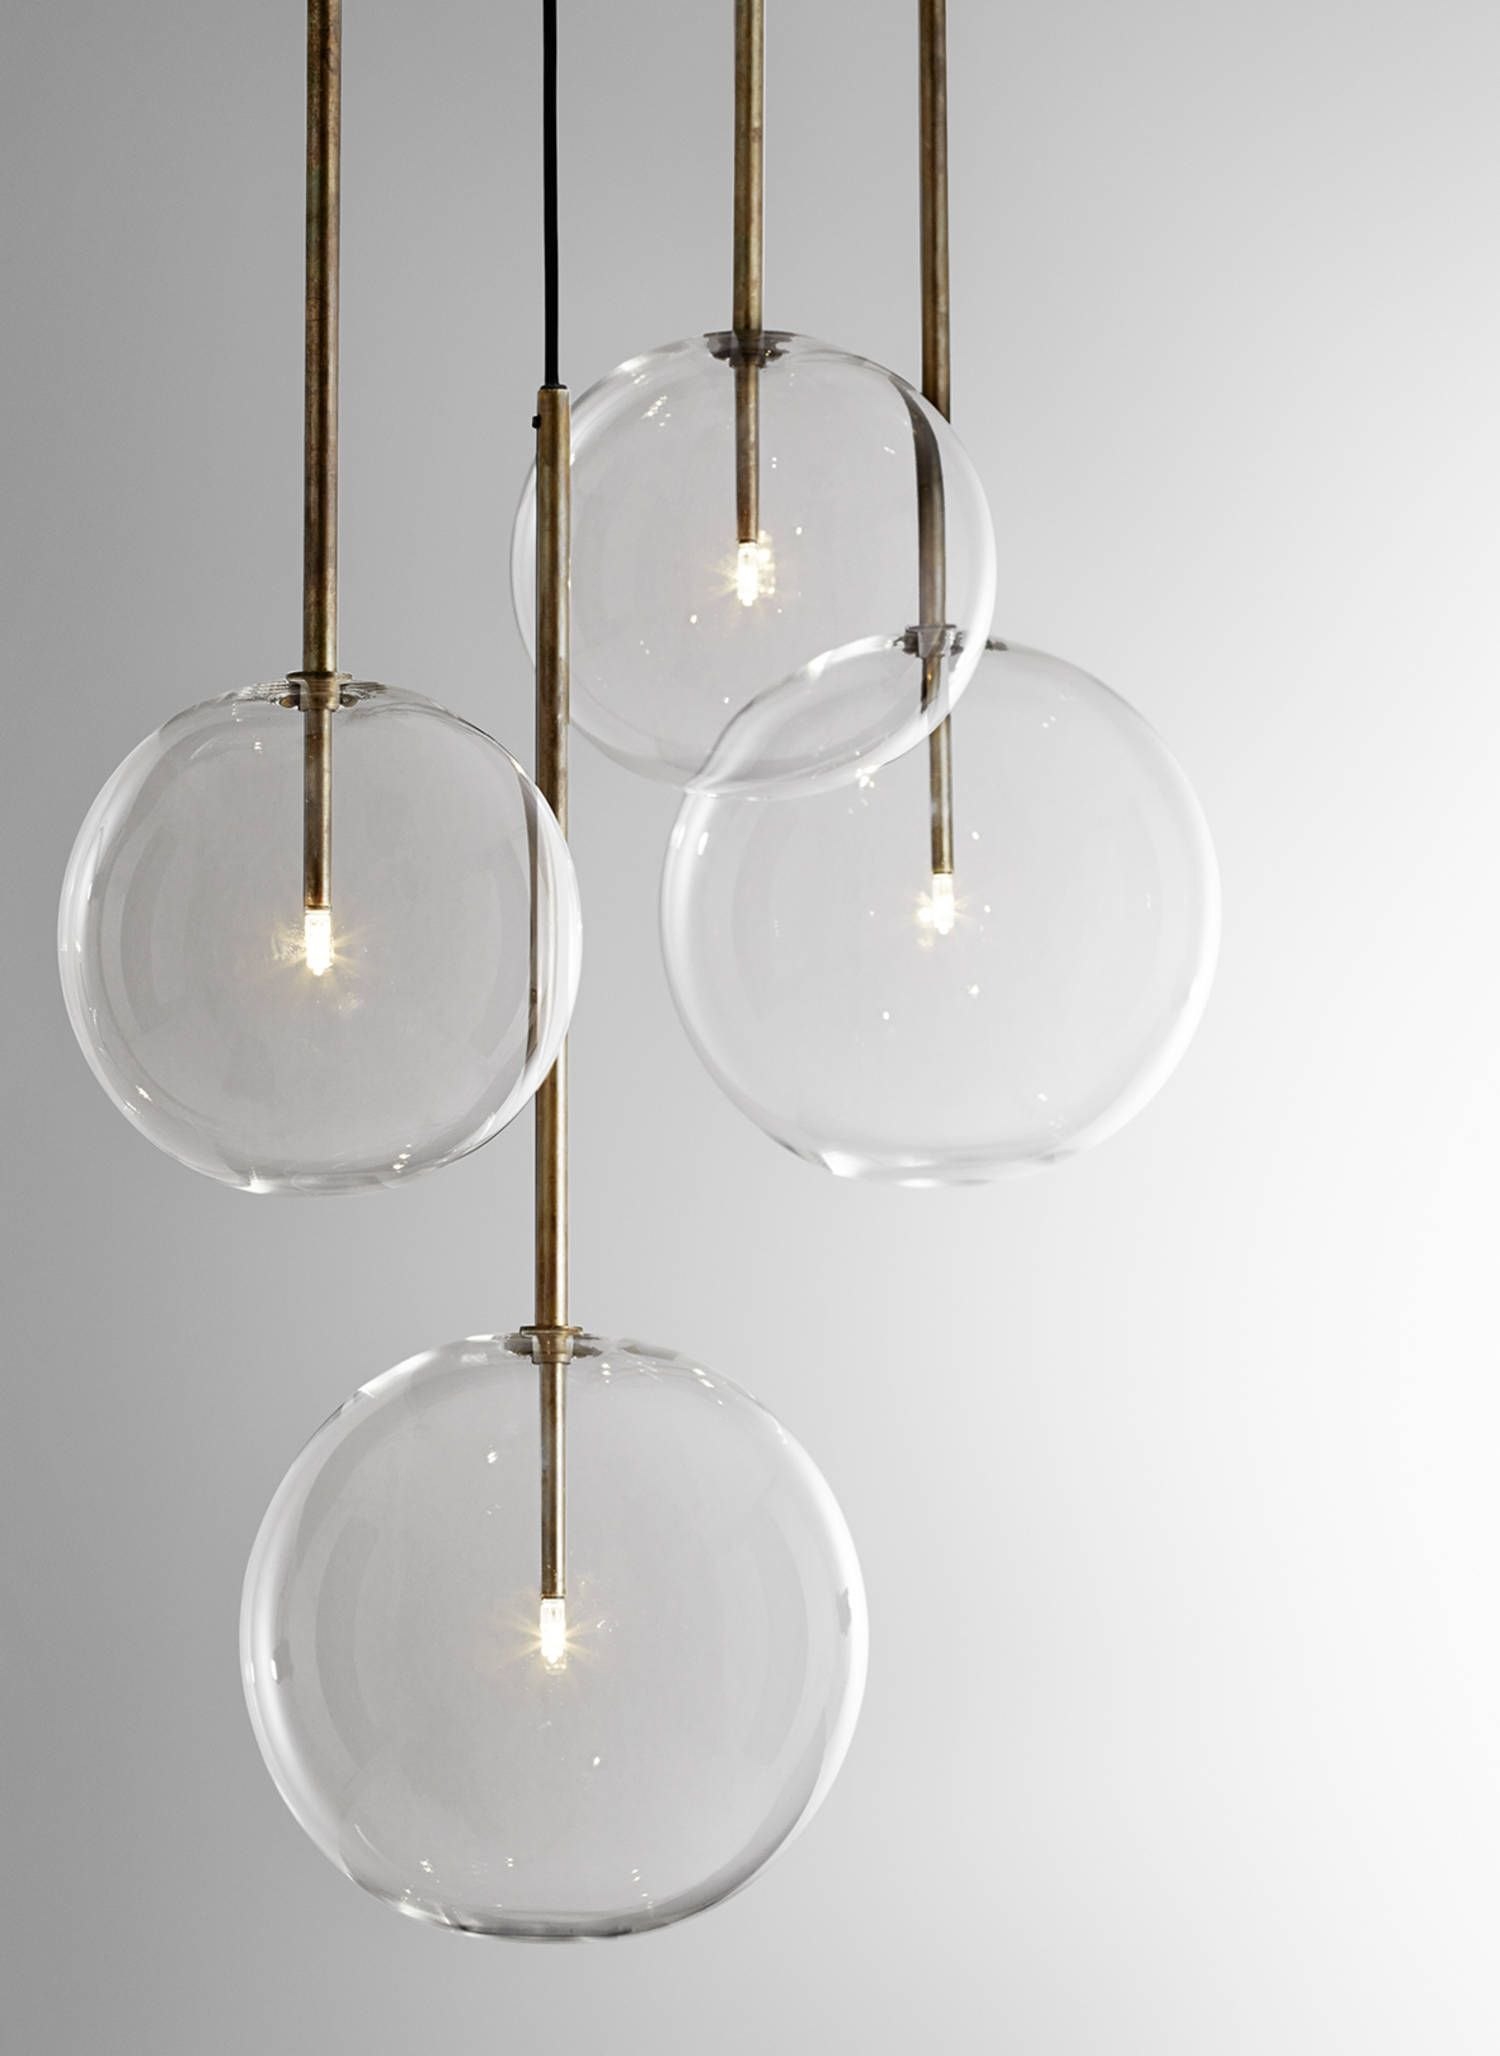 Lustre Moderne Transparent Bolle Sola Lighting Beleuchtung Luminaires Design